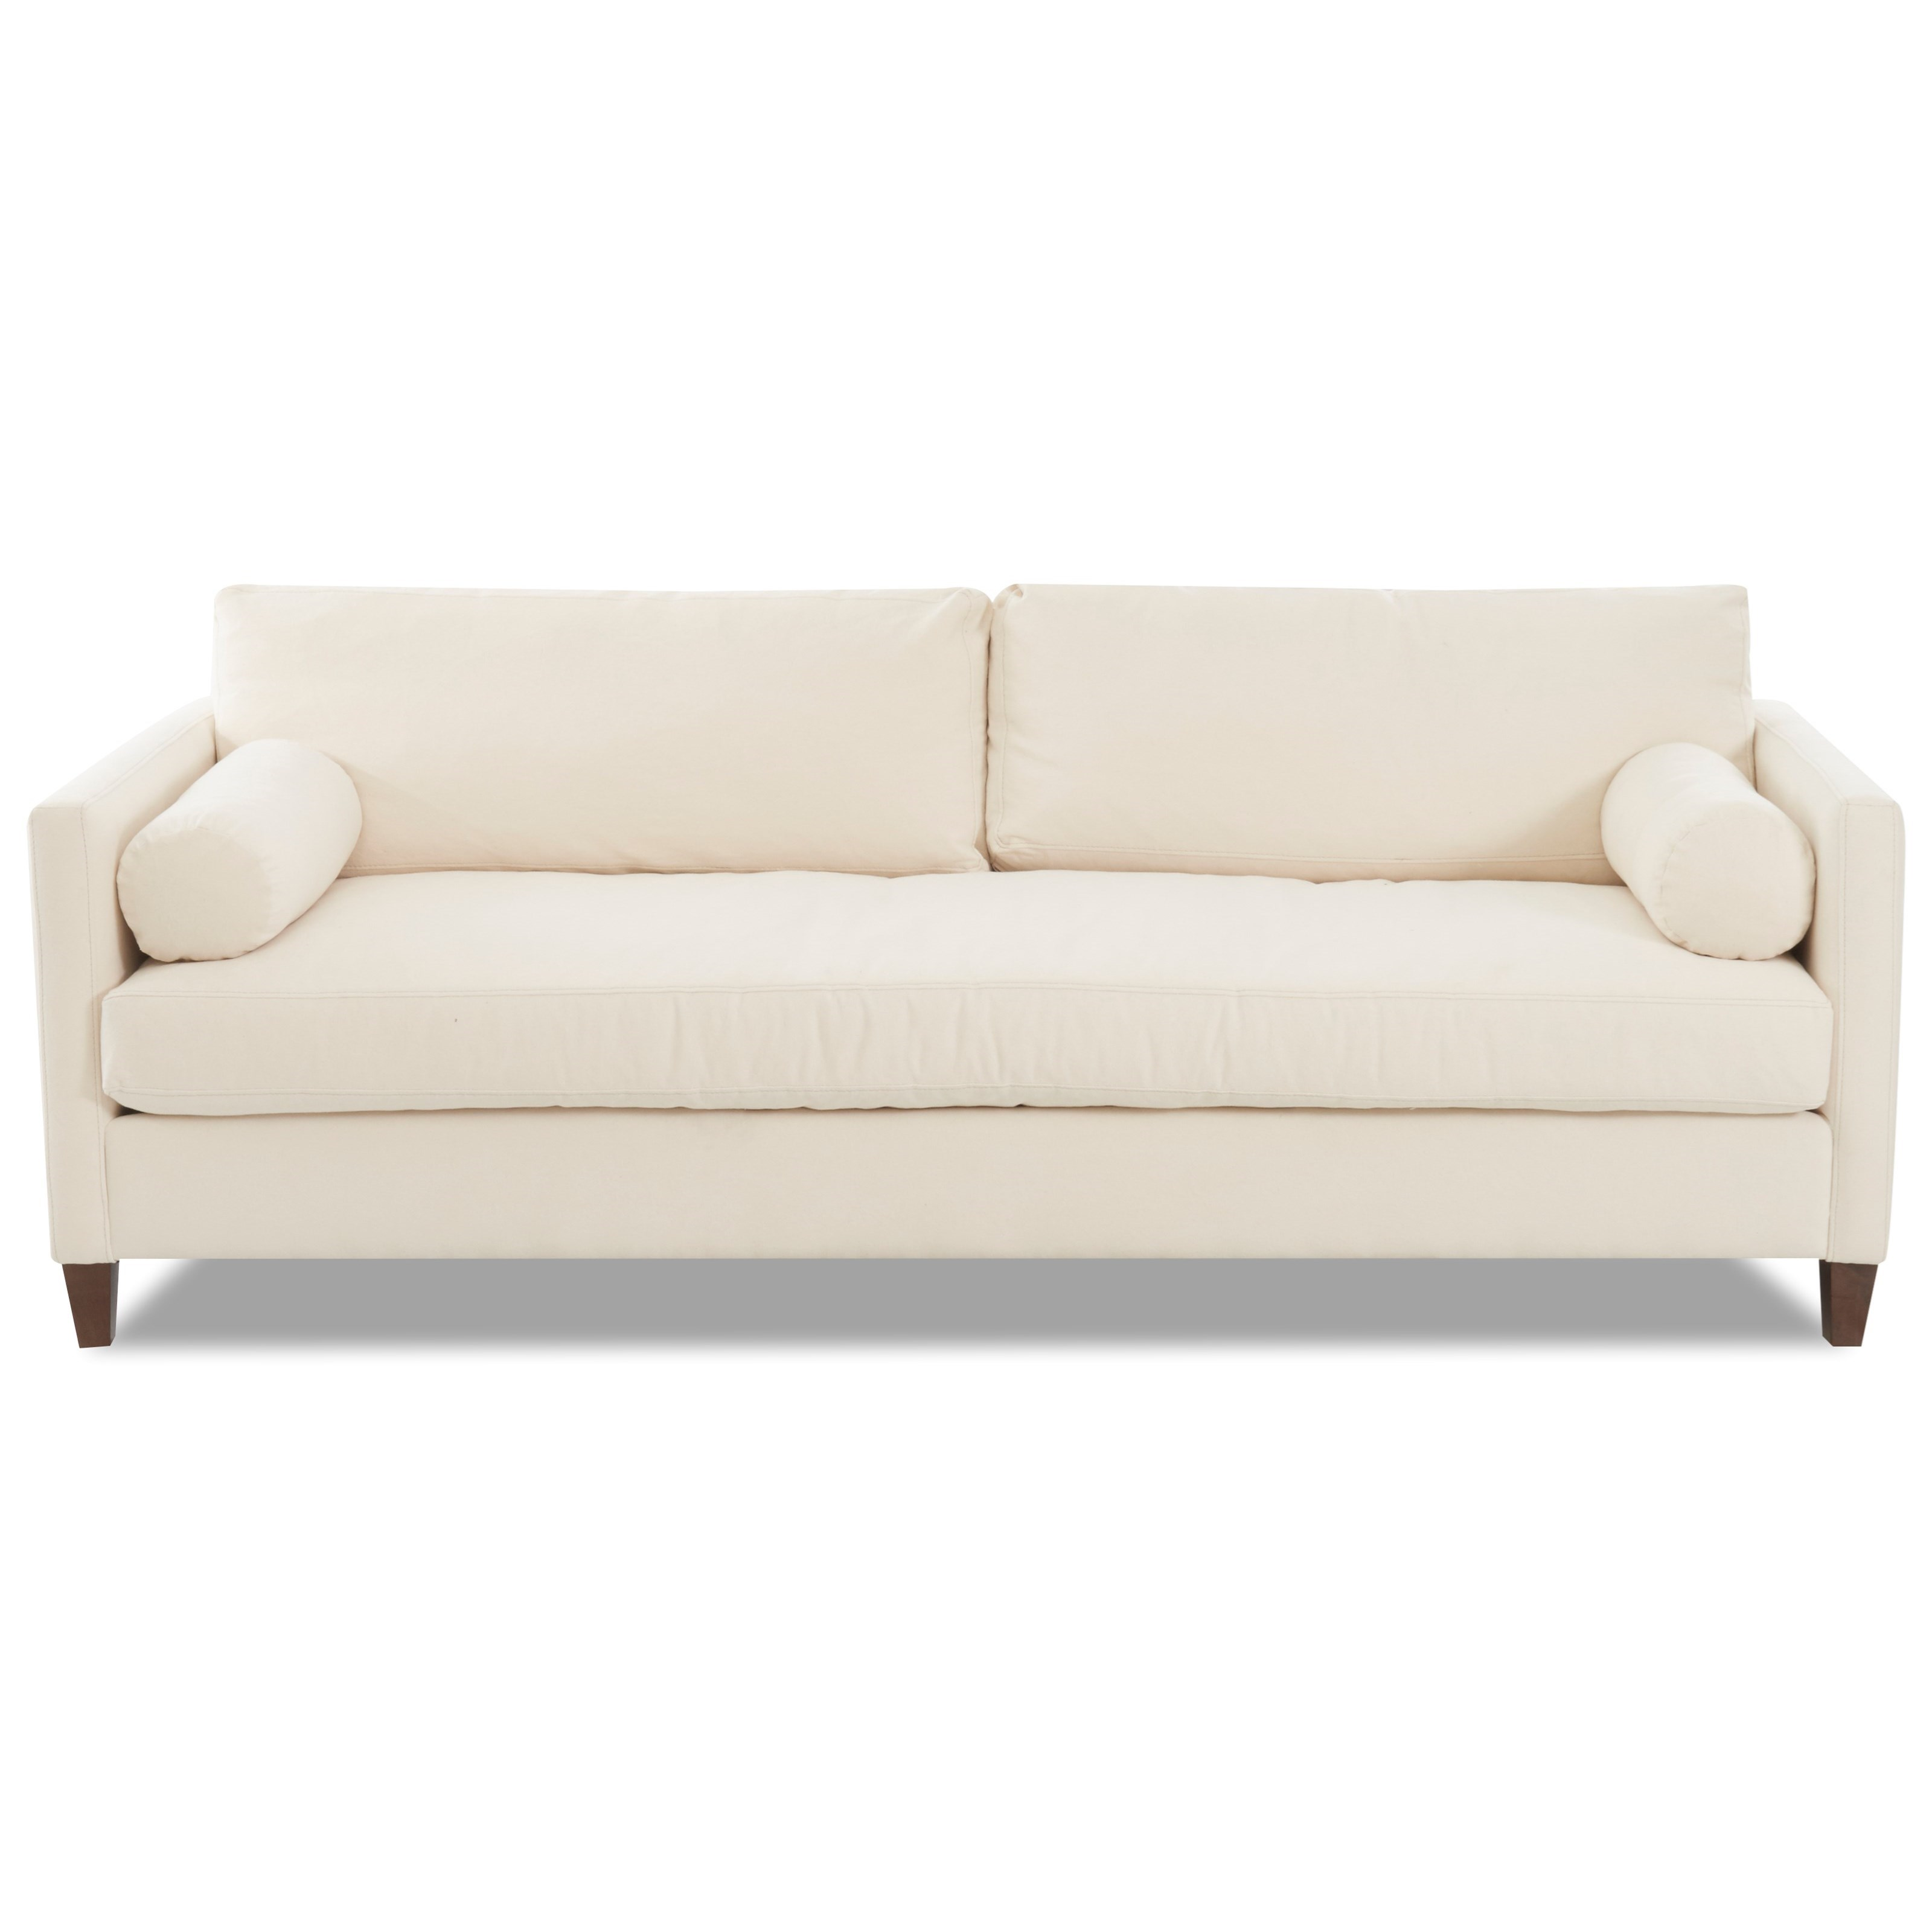 Brinley Sofa by Klaussner at Northeast Factory Direct